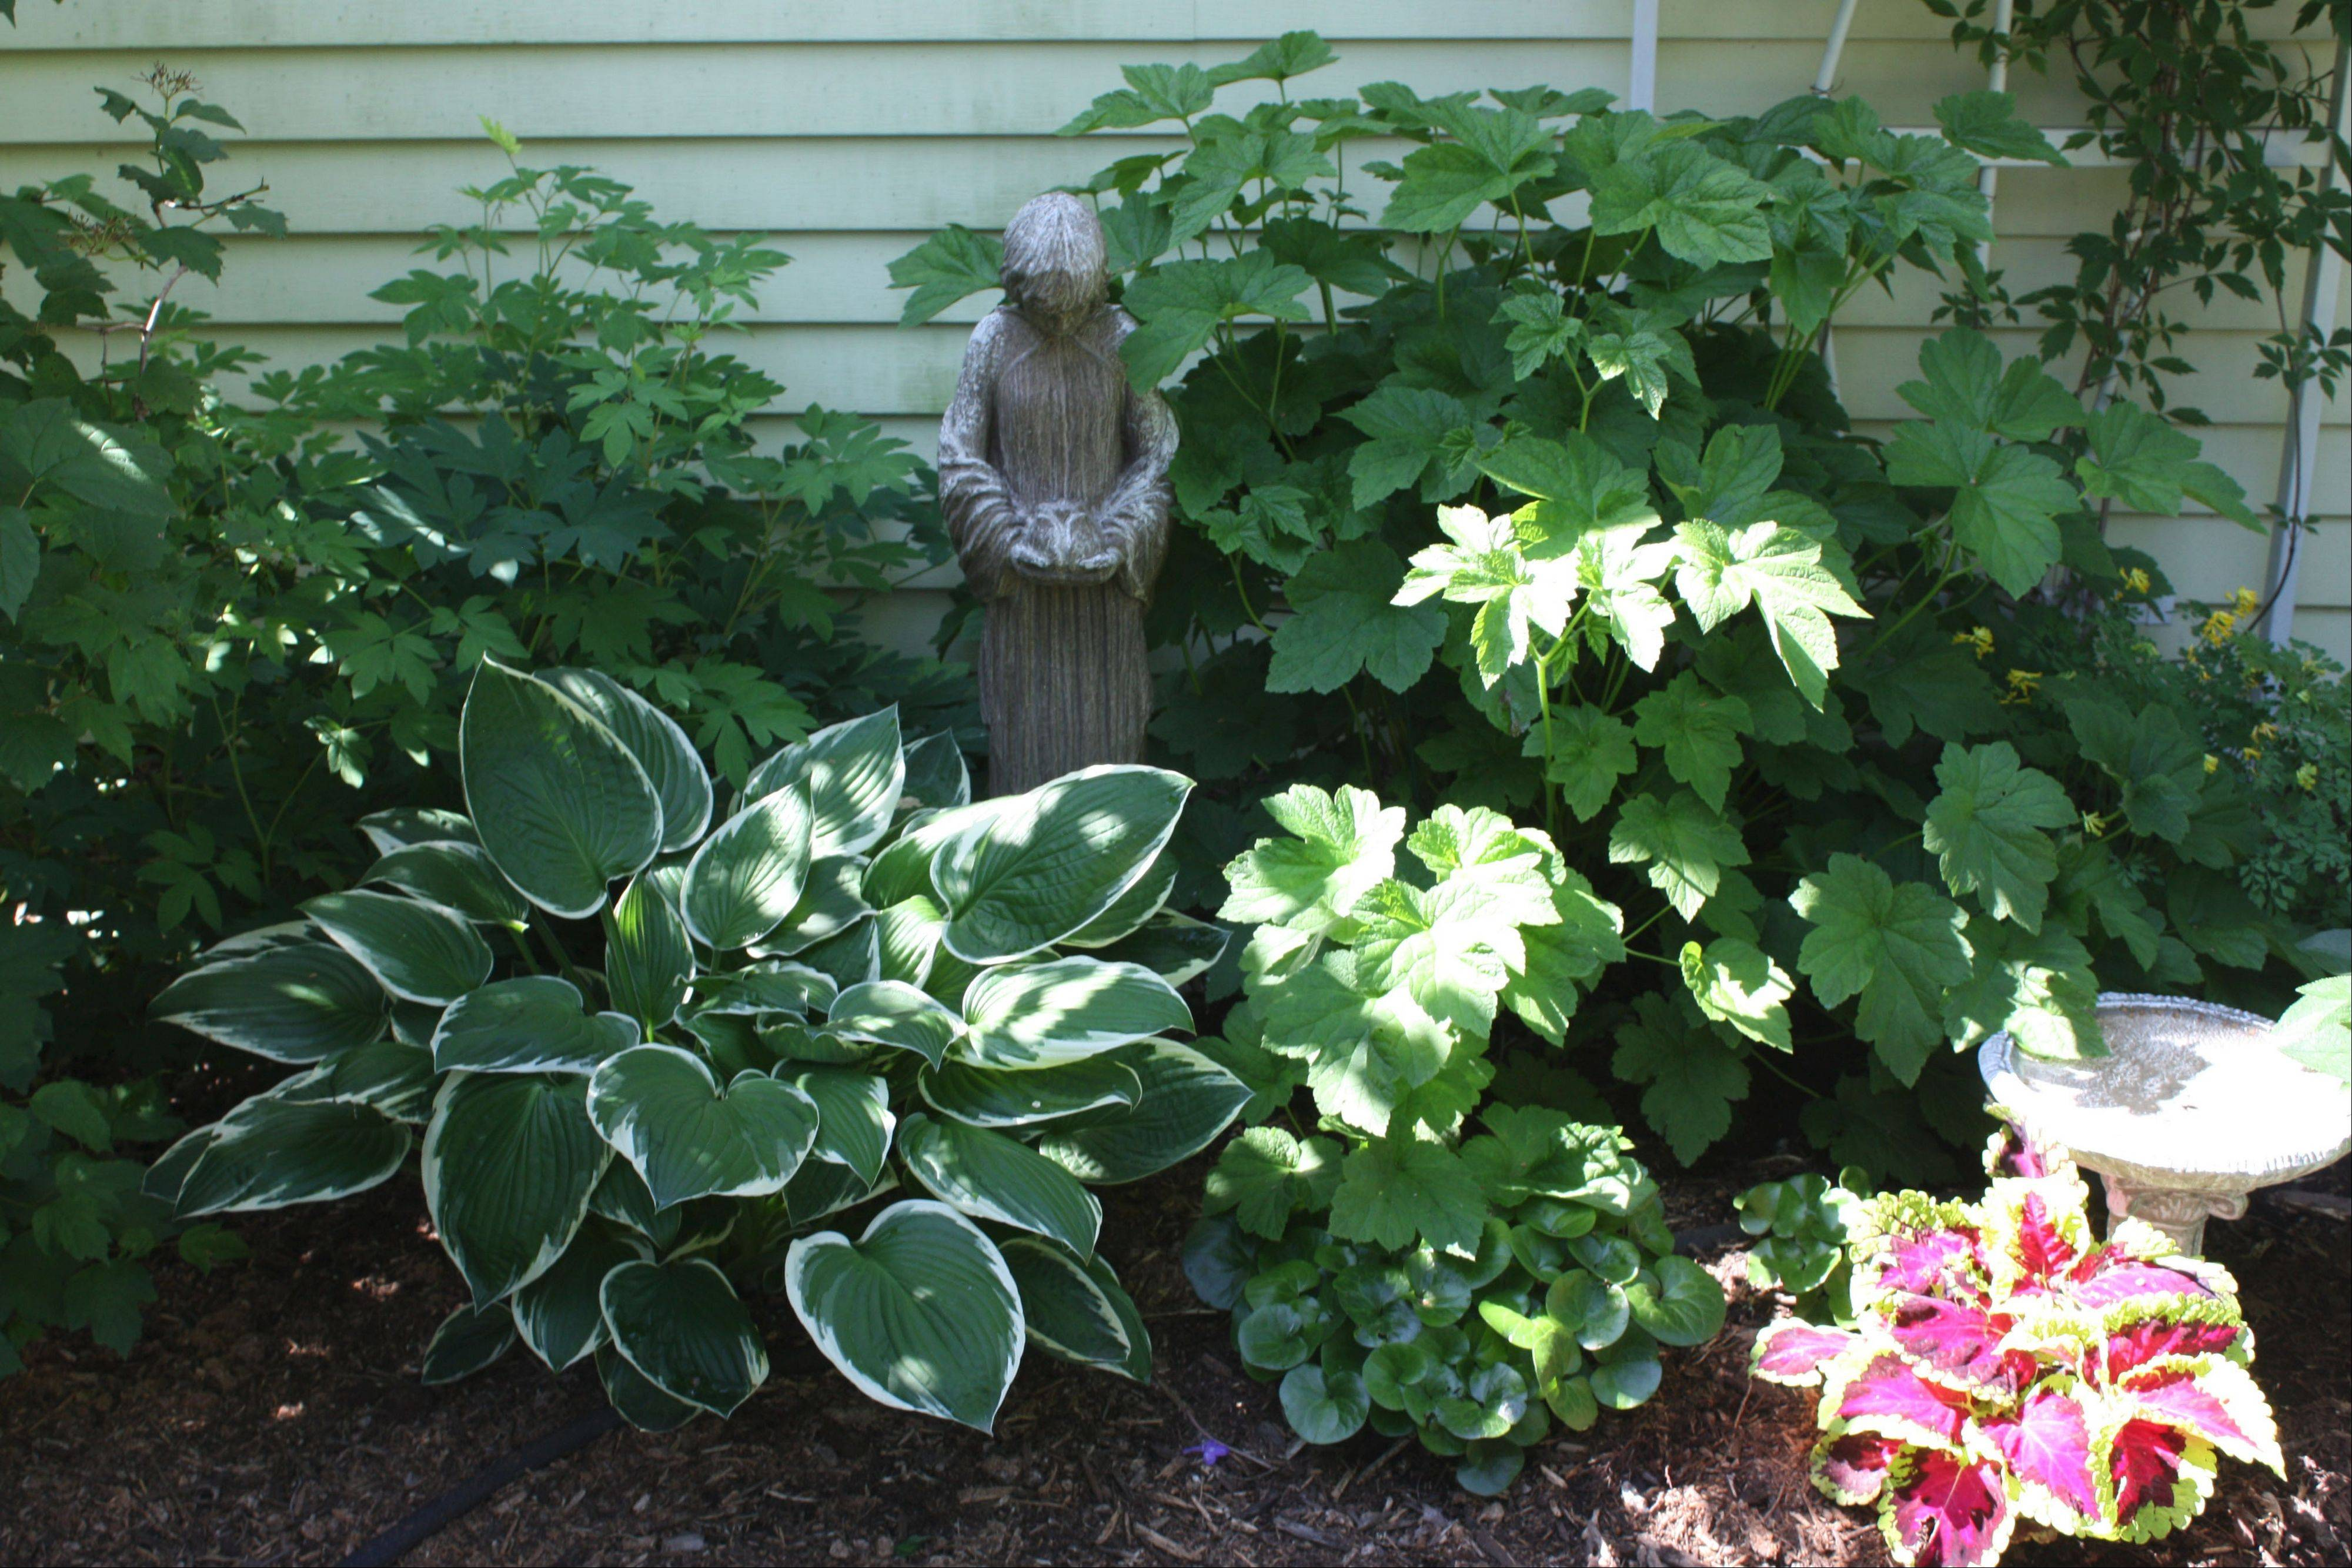 European ginger with its glossy leaf enjoys its spot near a multicolored annual coleus in the Sampsons' Lisle garden. To the right of the statue is Japanese anemone September charm and to the left is bleeding heart dicentra in pink. A variegated hosta, to the left, was original to the house and divided and replanted many times in the yard.